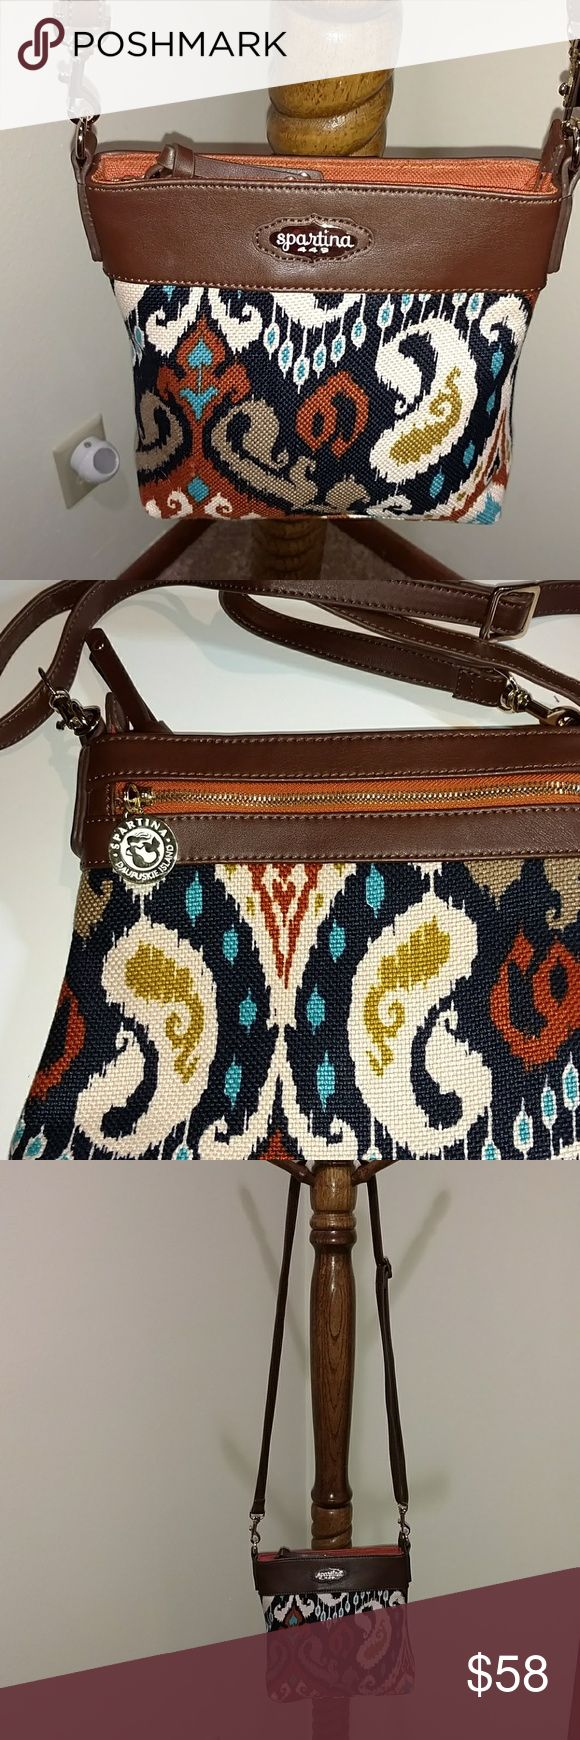 SPARTINA 449 CHRISTINA POCKET HIPSTER Beautiful Spartina's classic cross body/Shoulder bag.  Signature linen with genuine brown leather accents. Gold plated Spartina's plate & hardware.  Removable, adjustable shoulder strap. Exterior zip pocket. Two interior open pockets & one interior zip pocket. Top zip closure with Leather pull tab. Exterior zip pull has a decorative round gold plated & white pull tab that has a mermaid in the center & has the words SPARTINA DAUFUSKI ISLAND engraved…